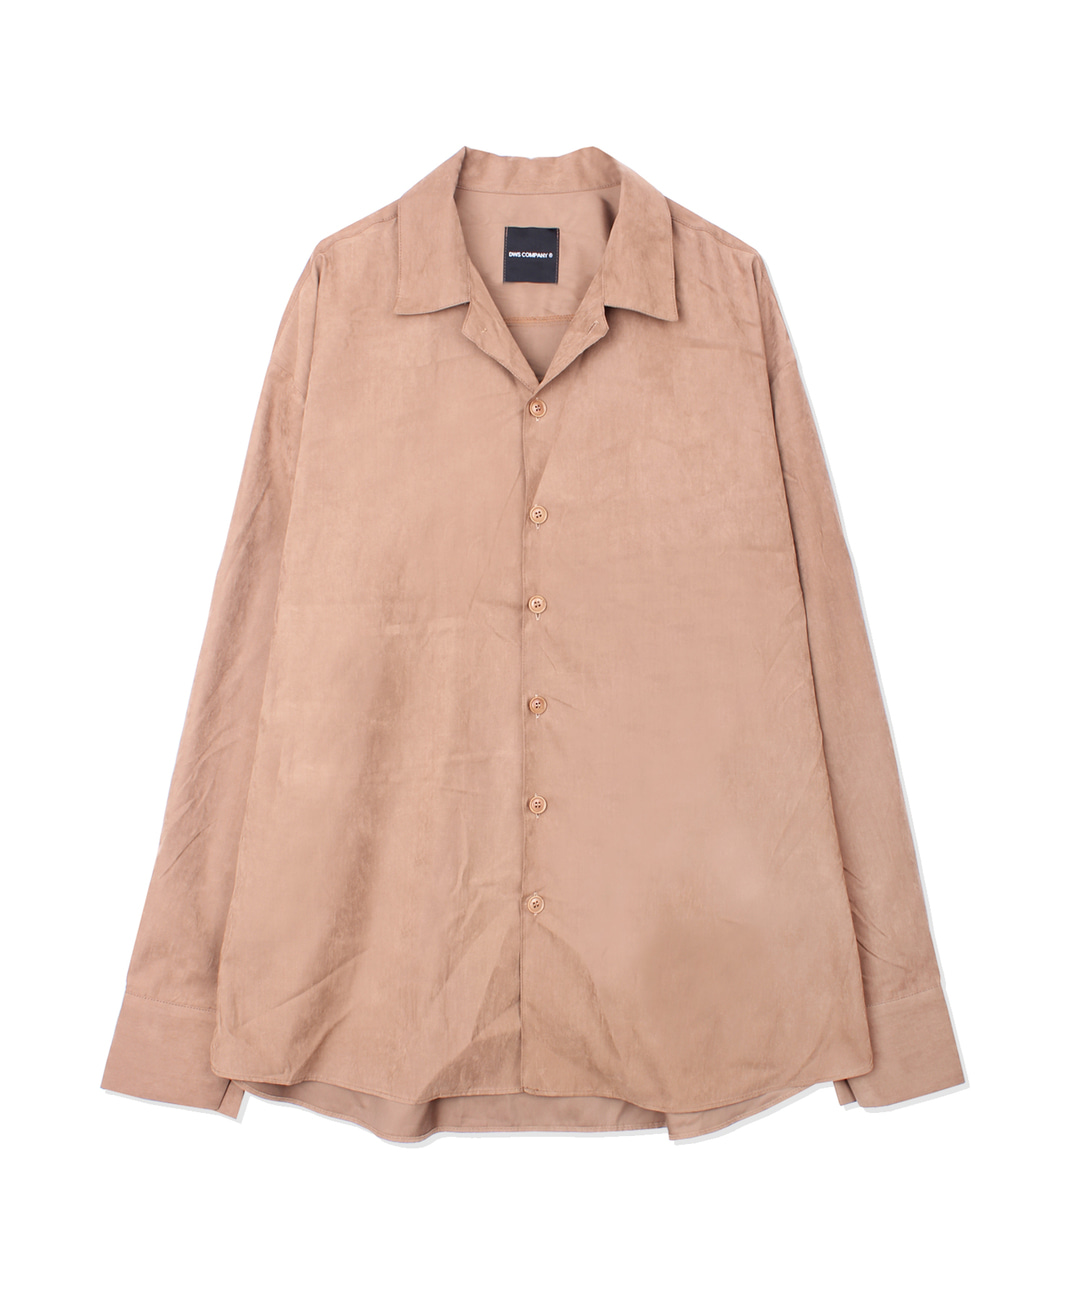 DWS OPEN COLLAR SHIRT(BROWN)